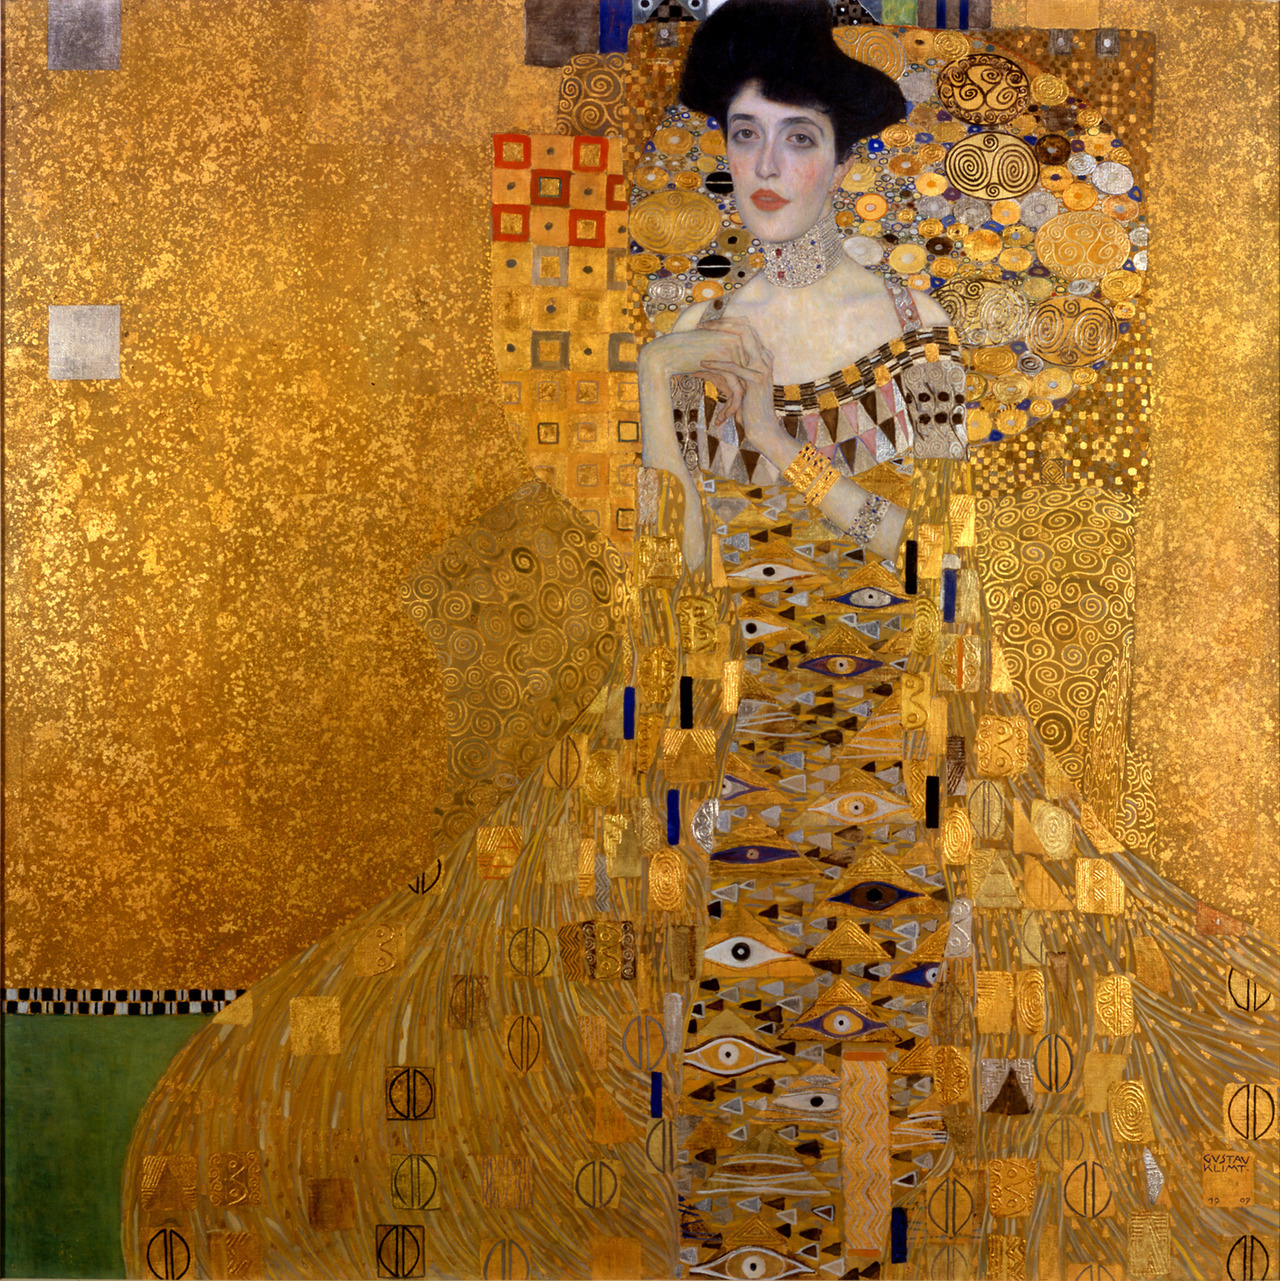 """Klimt's Scientific Influence While I was reading about the influence of golden-age Vienna on modern medicine and painters like Gustav Klimt, I discovered that Klimt's trademark patterns (the """"blobs"""" and orbs you see above, from Portrait of Adele Bloch-Bauer I) were influenced by early studies of cells under the microscope. Carl von Rokitansky founded the Second Vienna School of Medicine and eventually befriended Klimt. Rokitansky was a huge influence in the early days of modern science-based medicine, and allowed Klimt to view some of the tissue and bacterial slides from the medical school. It's a fascinating story, check out more in this interview between Eric Kandel and Jonah Lehrer. We can talk at length about the similarities of science and art, but this is one of the finest examples of where each feeds from the other. To quote Eric Kandel again, in a note to paste on your wall:  """"…[artists]have insight into the human mind that often precedes the insight that scientists have, because scientists need to design experiments, and then carry them out in order to do it. They cannot do it by intuition, alone, as can writers and painters."""""""